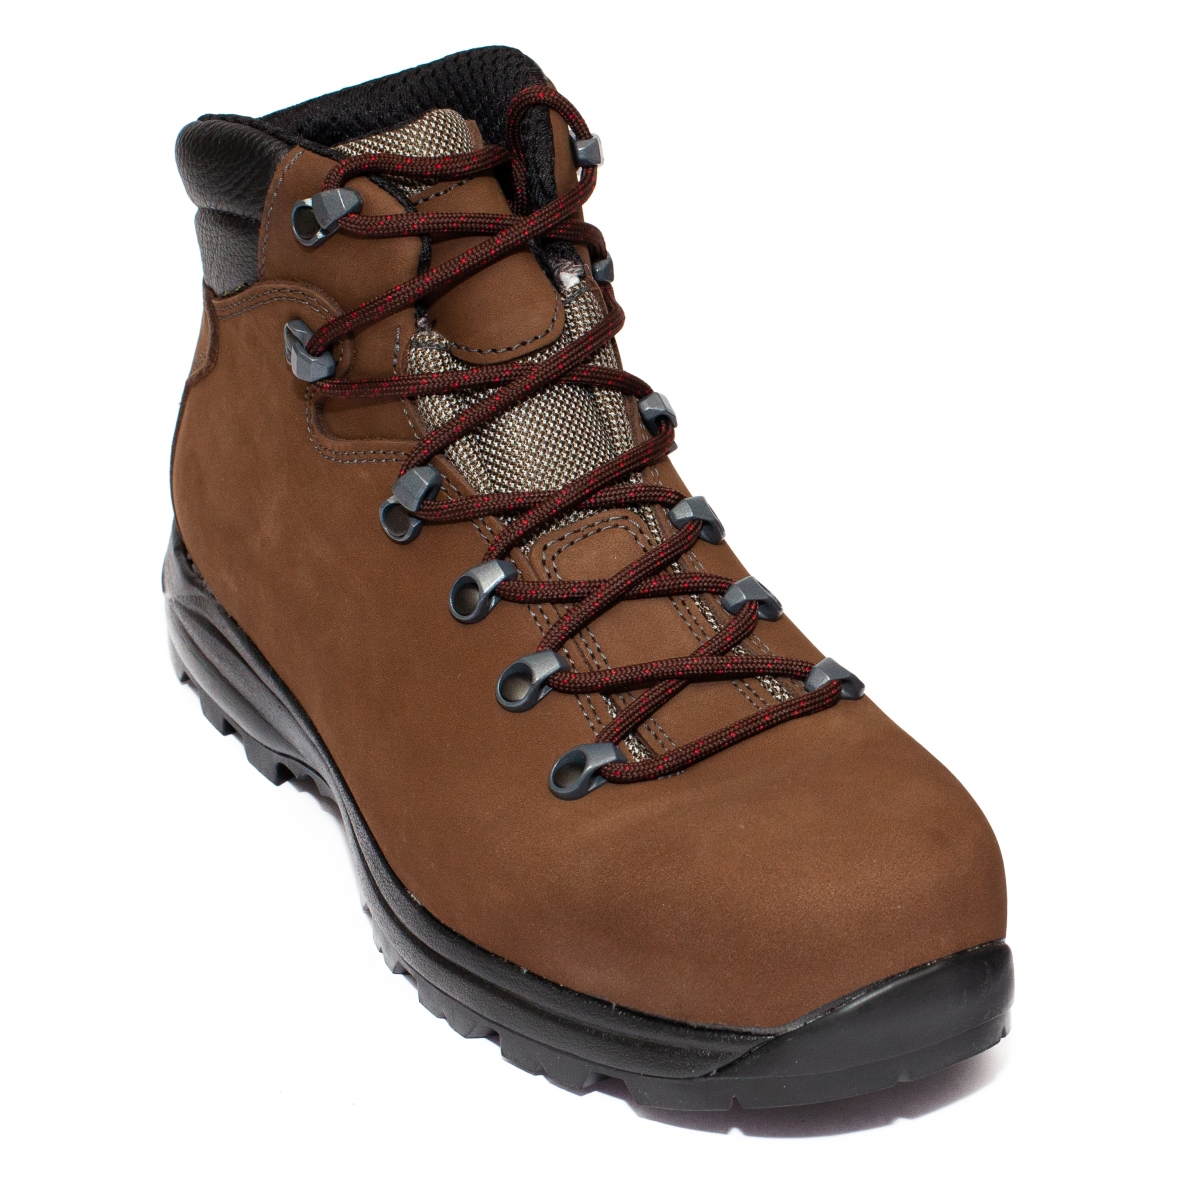 Ghete goretex Alpi Brown 36-46